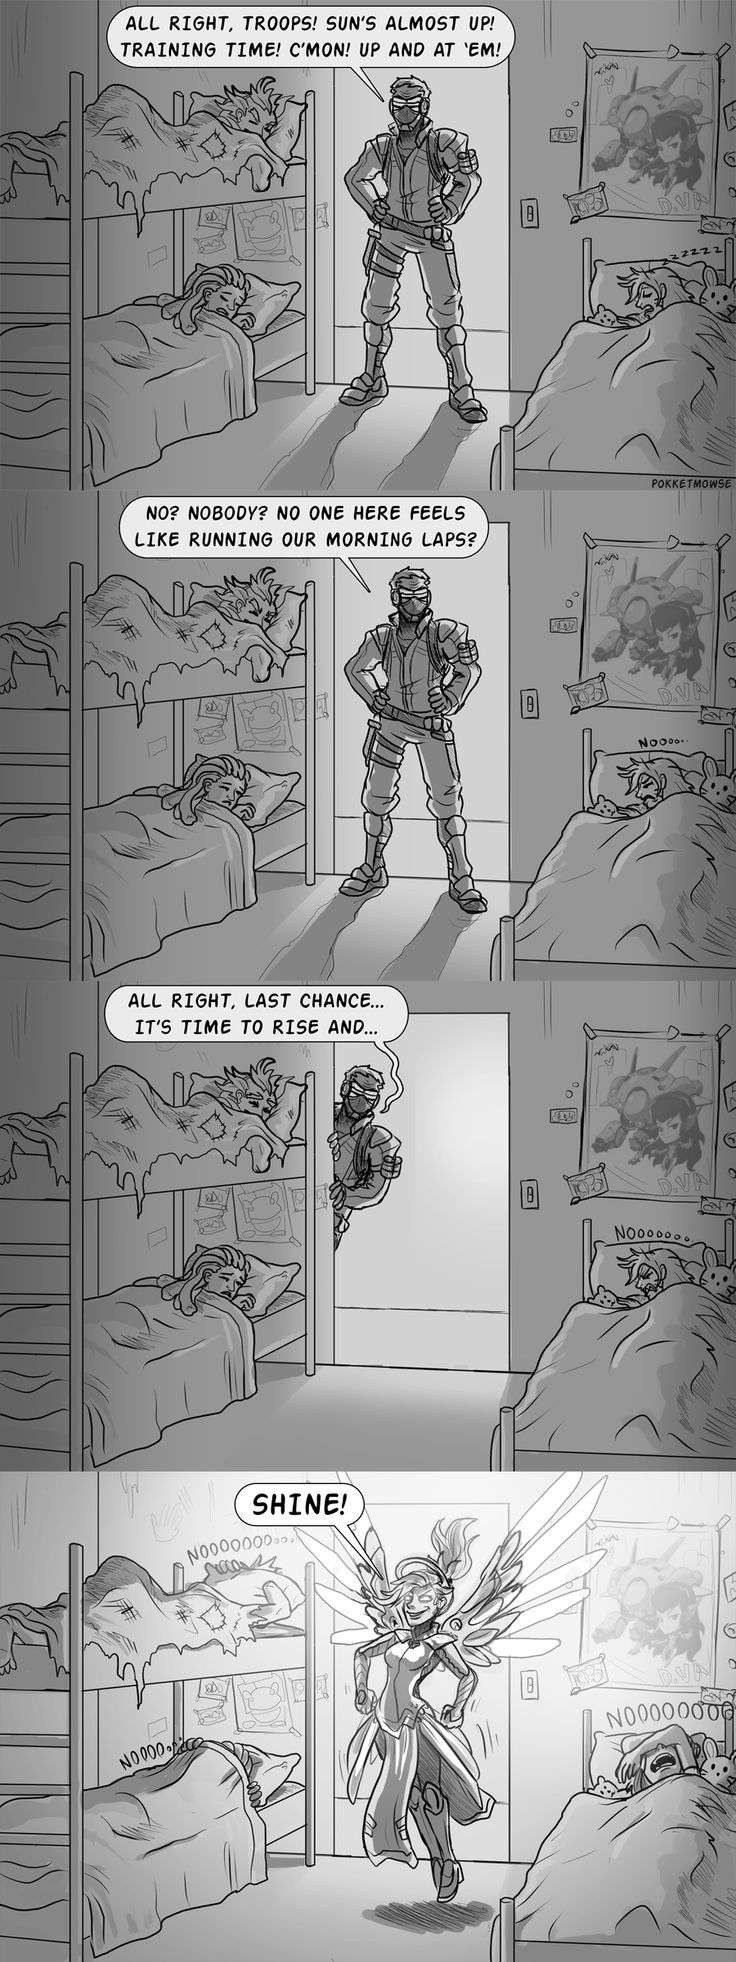 Haha that's the worst way to wake up lol. I'd totally do that haha mercy and 76 are the best parents haha